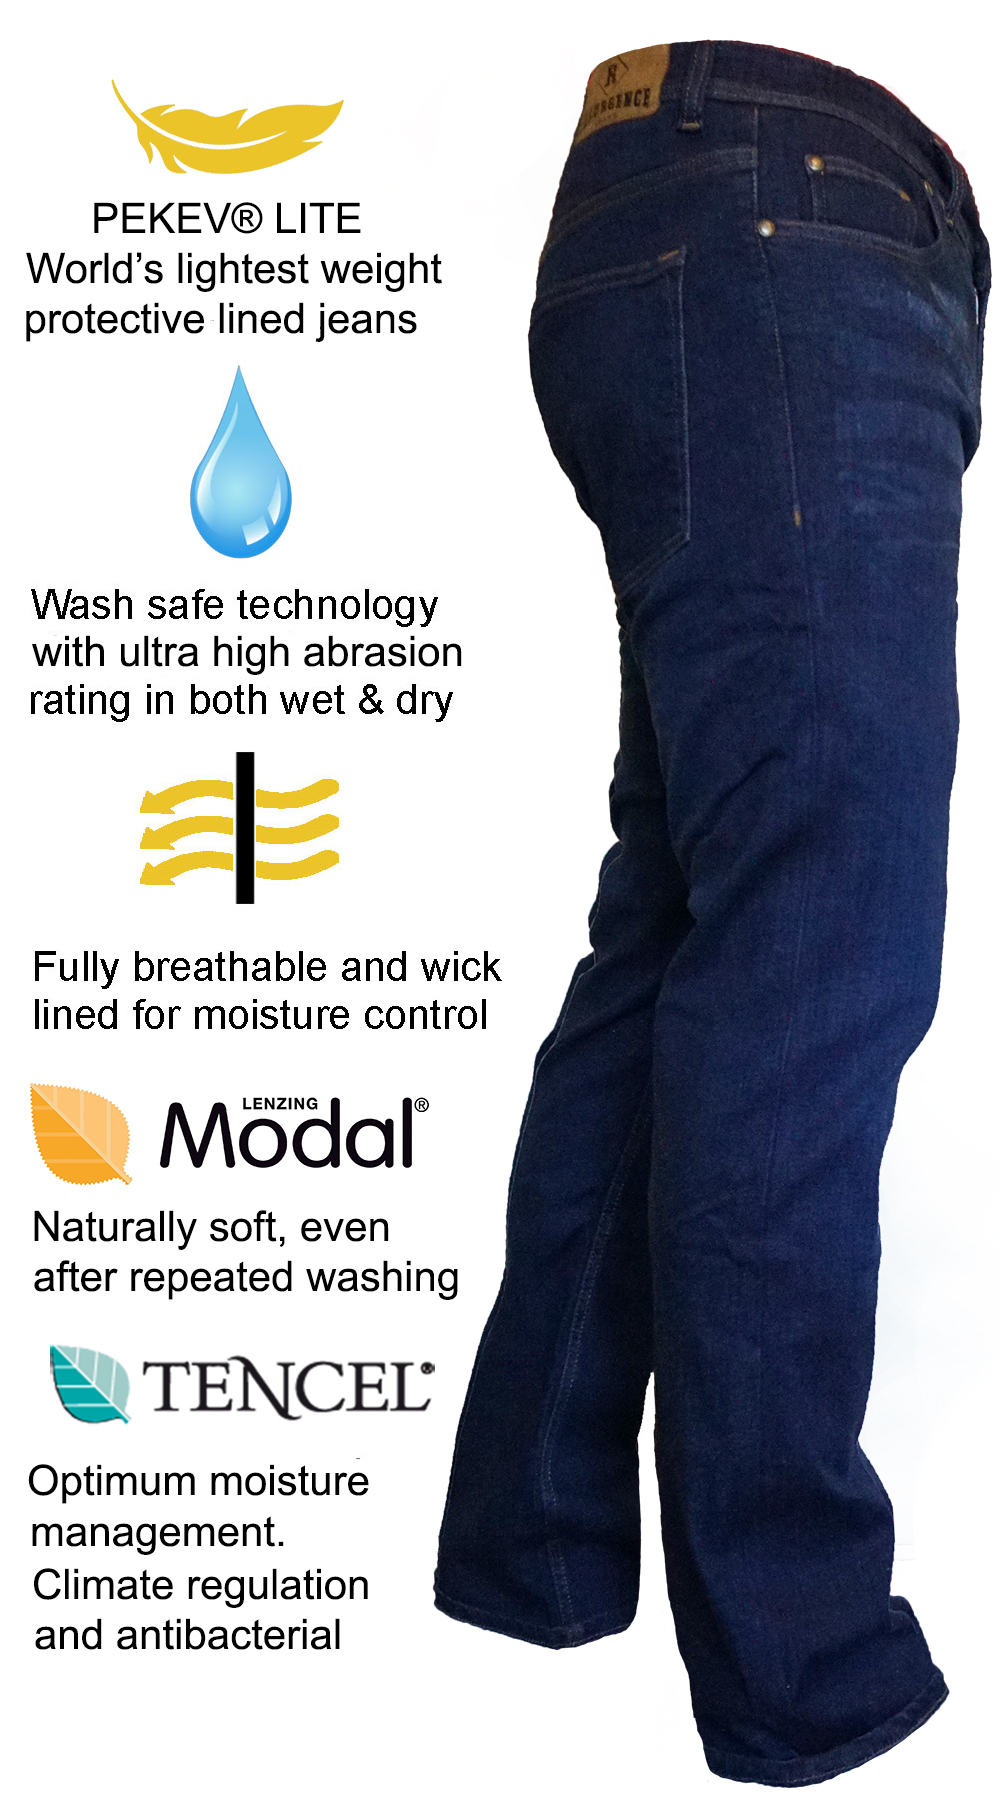 PEKEV lite jeans - protective motorcycle clothing - Features